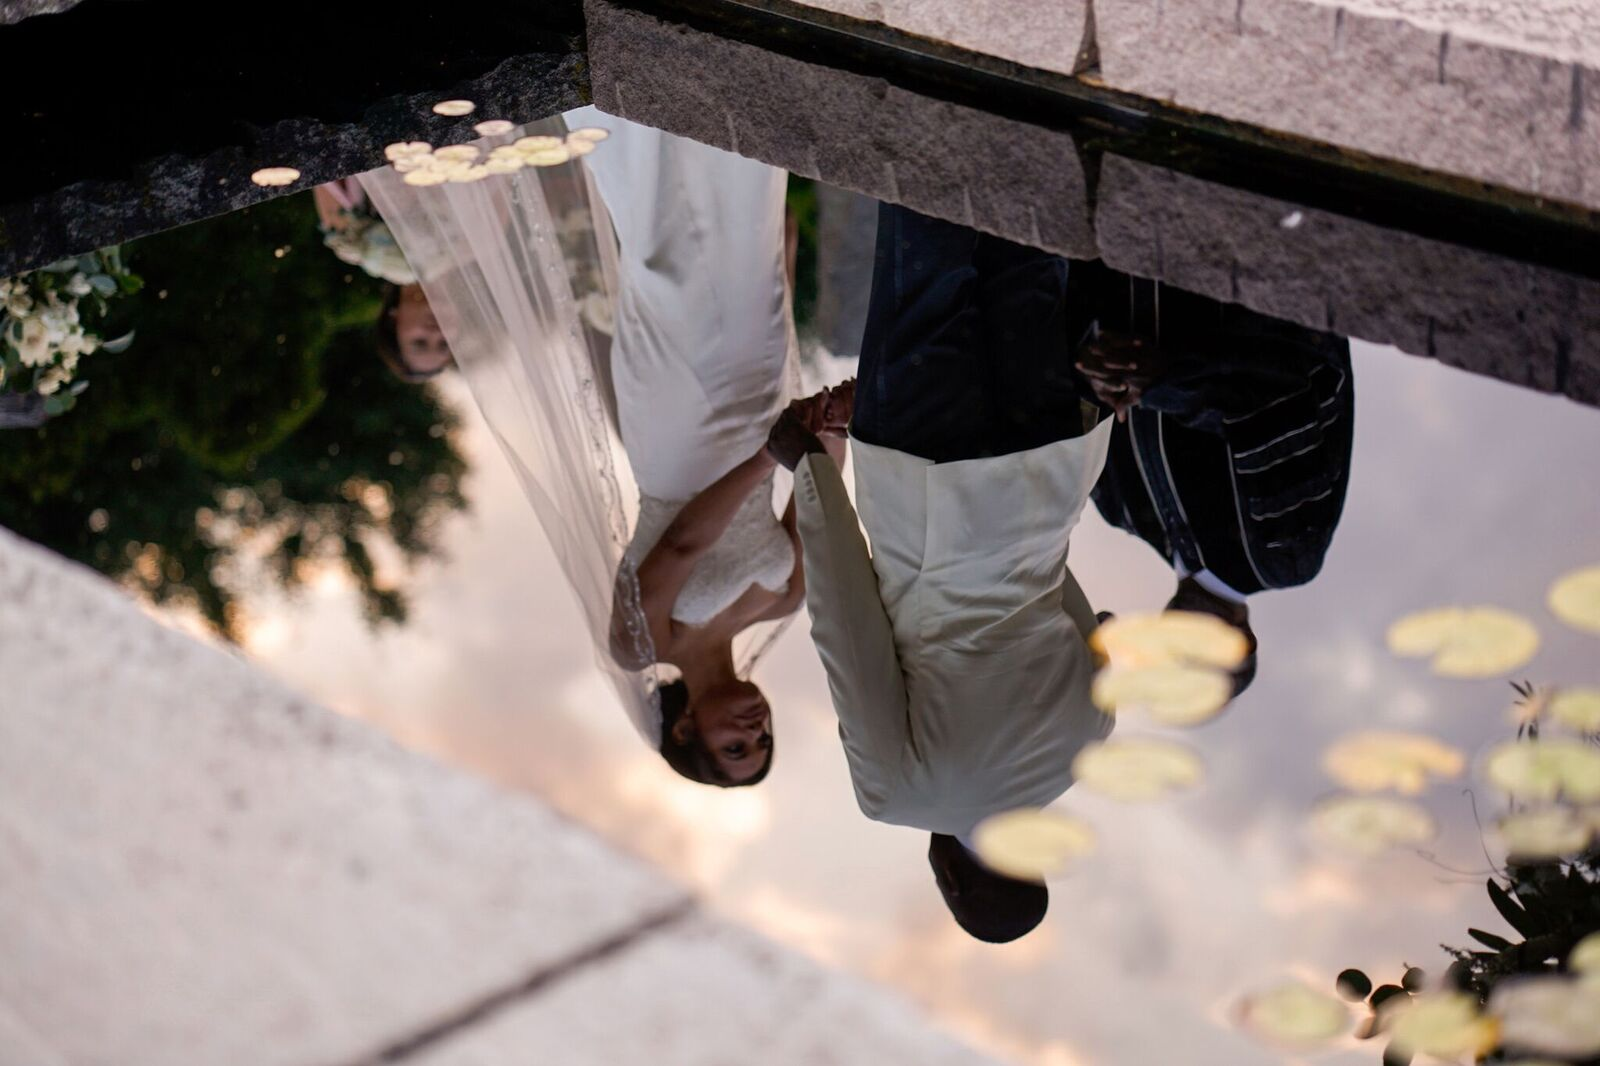 reflection of bride and groom